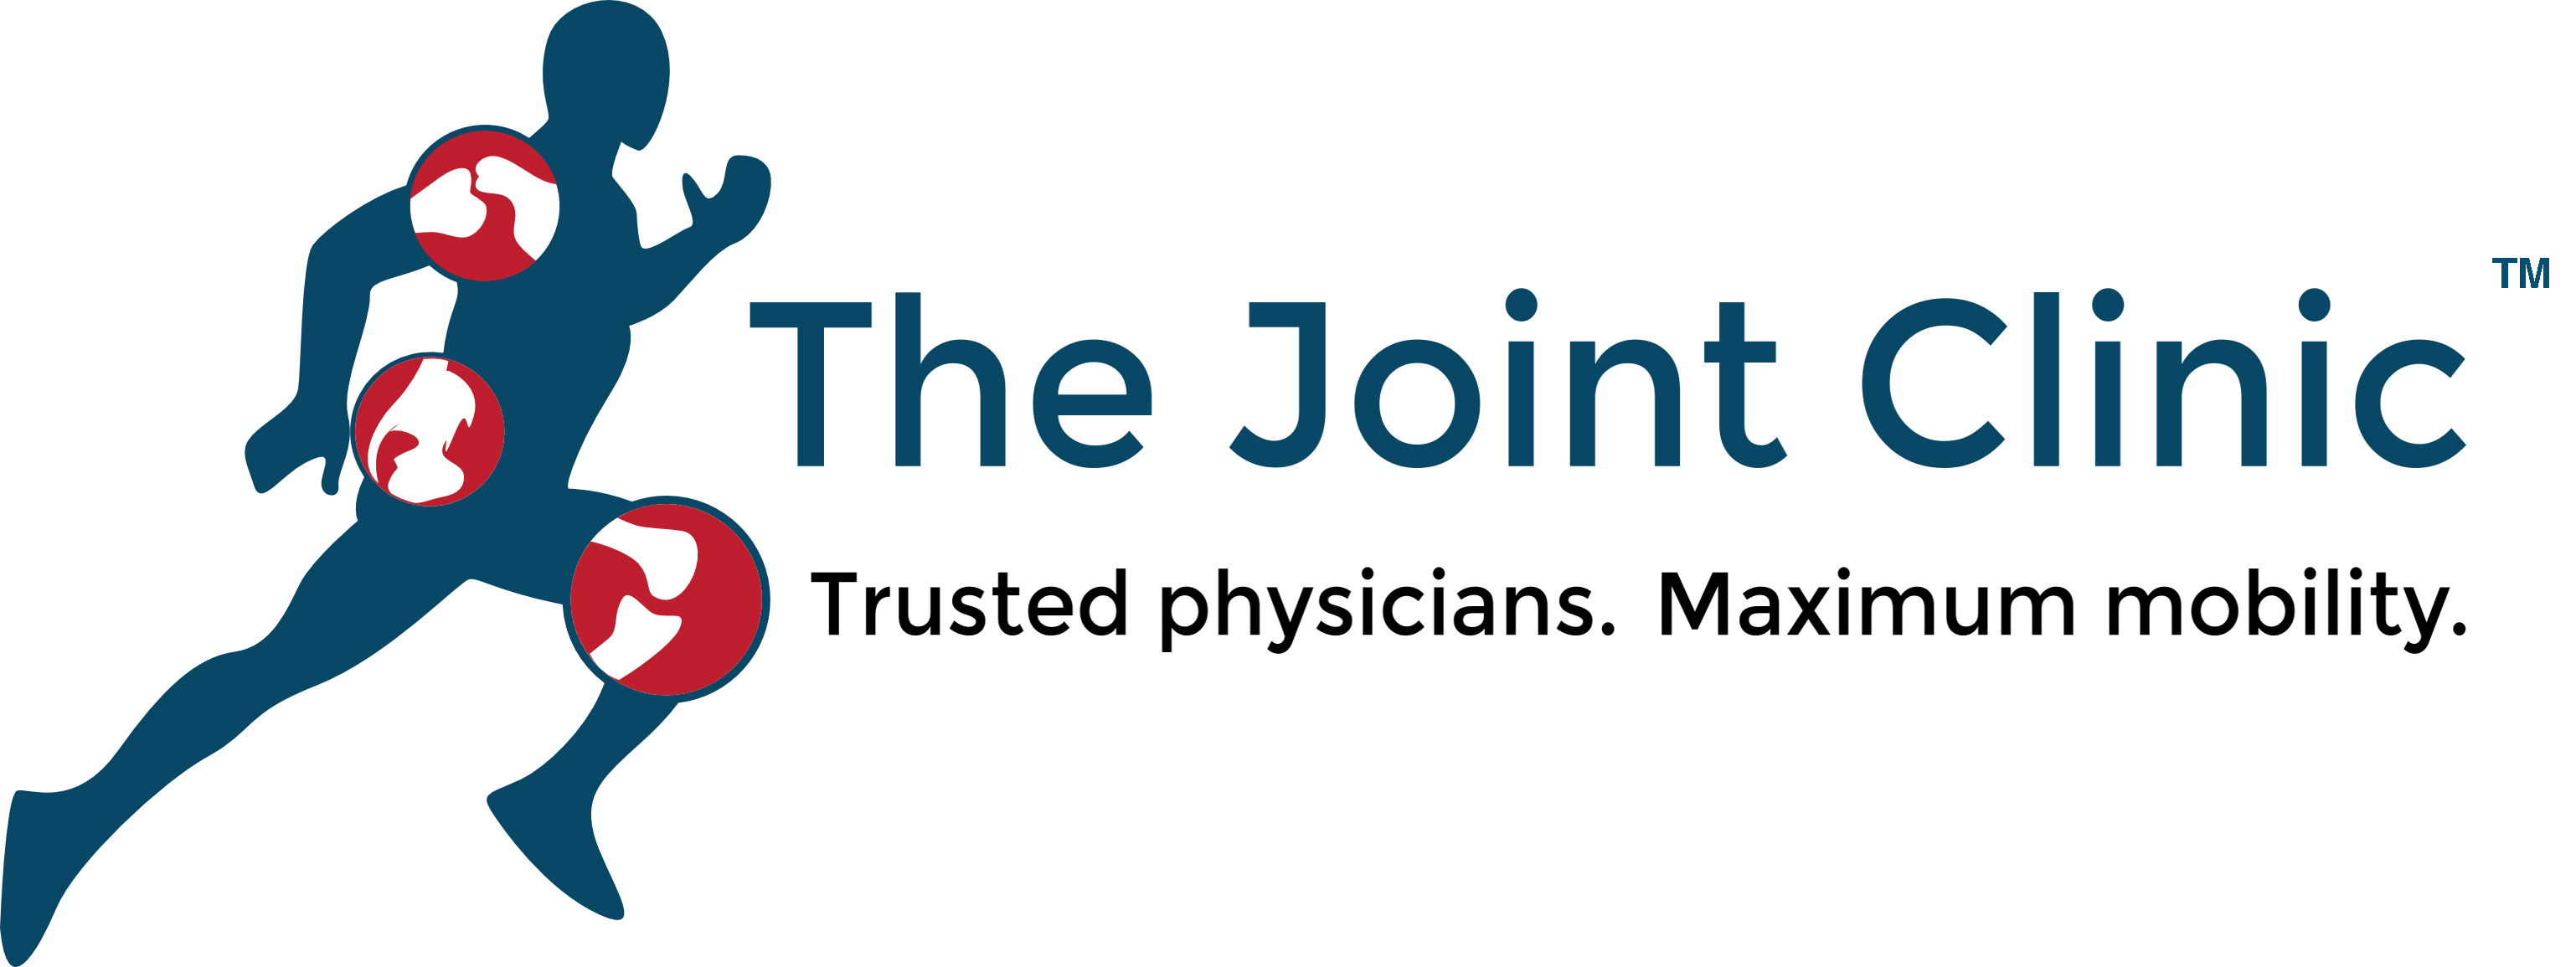 The Joint Clinic